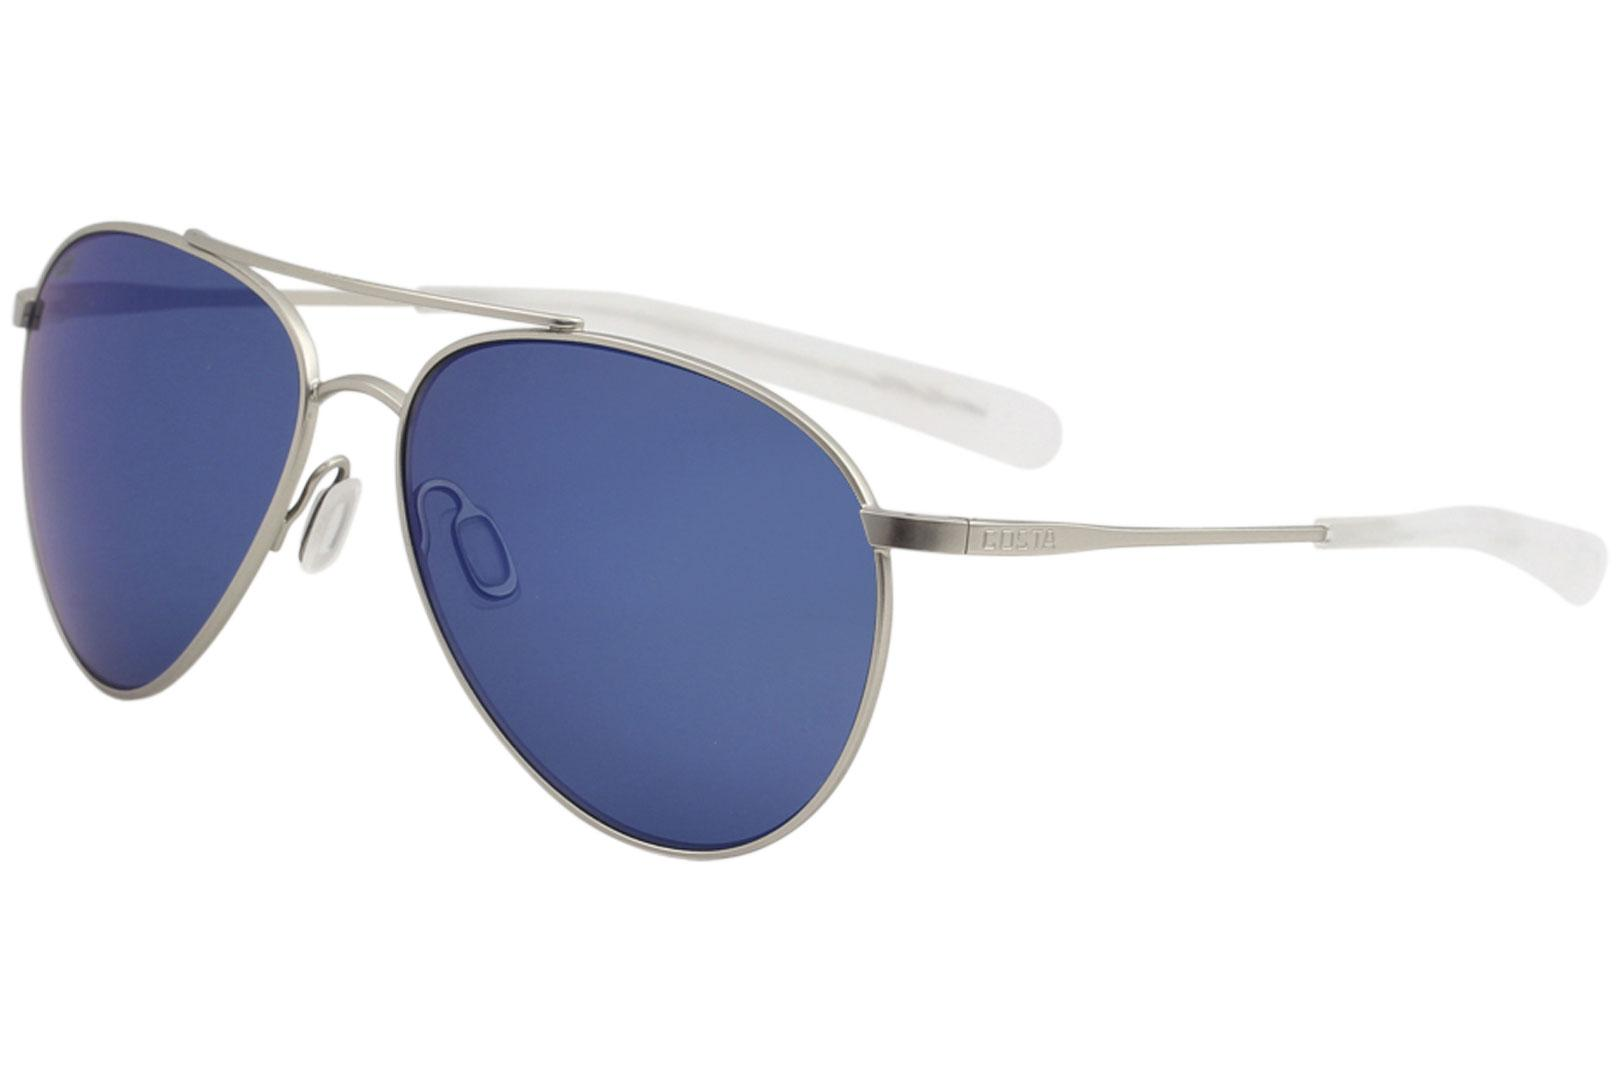 70de164c20 Costa Del Mar Women s Piper PIP183 PIP 183 Pilot Polarized Titanium  Sunglasses